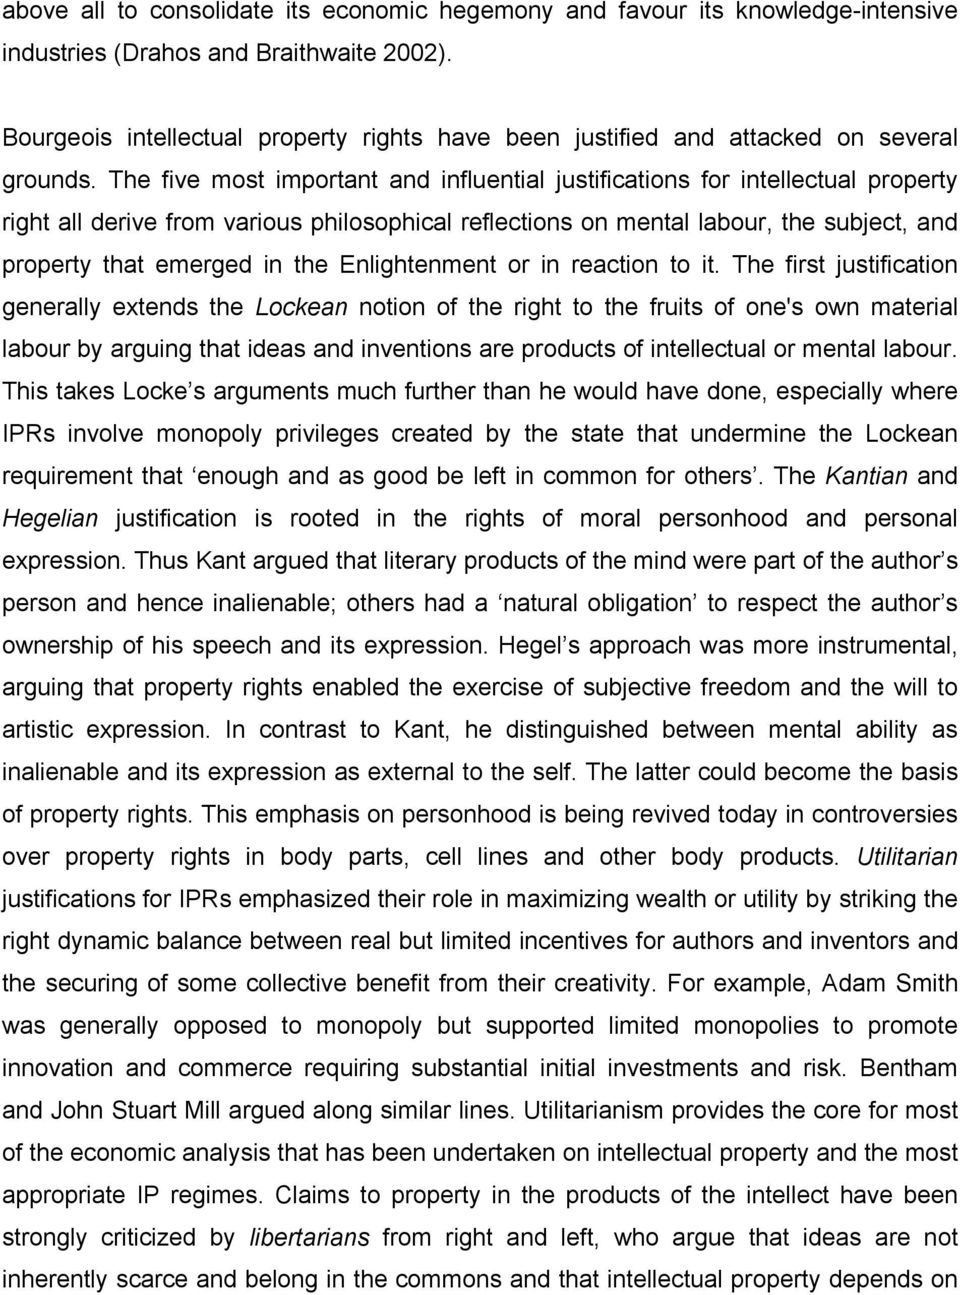 The five most important and influential justifications for intellectual property right all derive from various philosophical reflections on mental labour, the subject, and property that emerged in